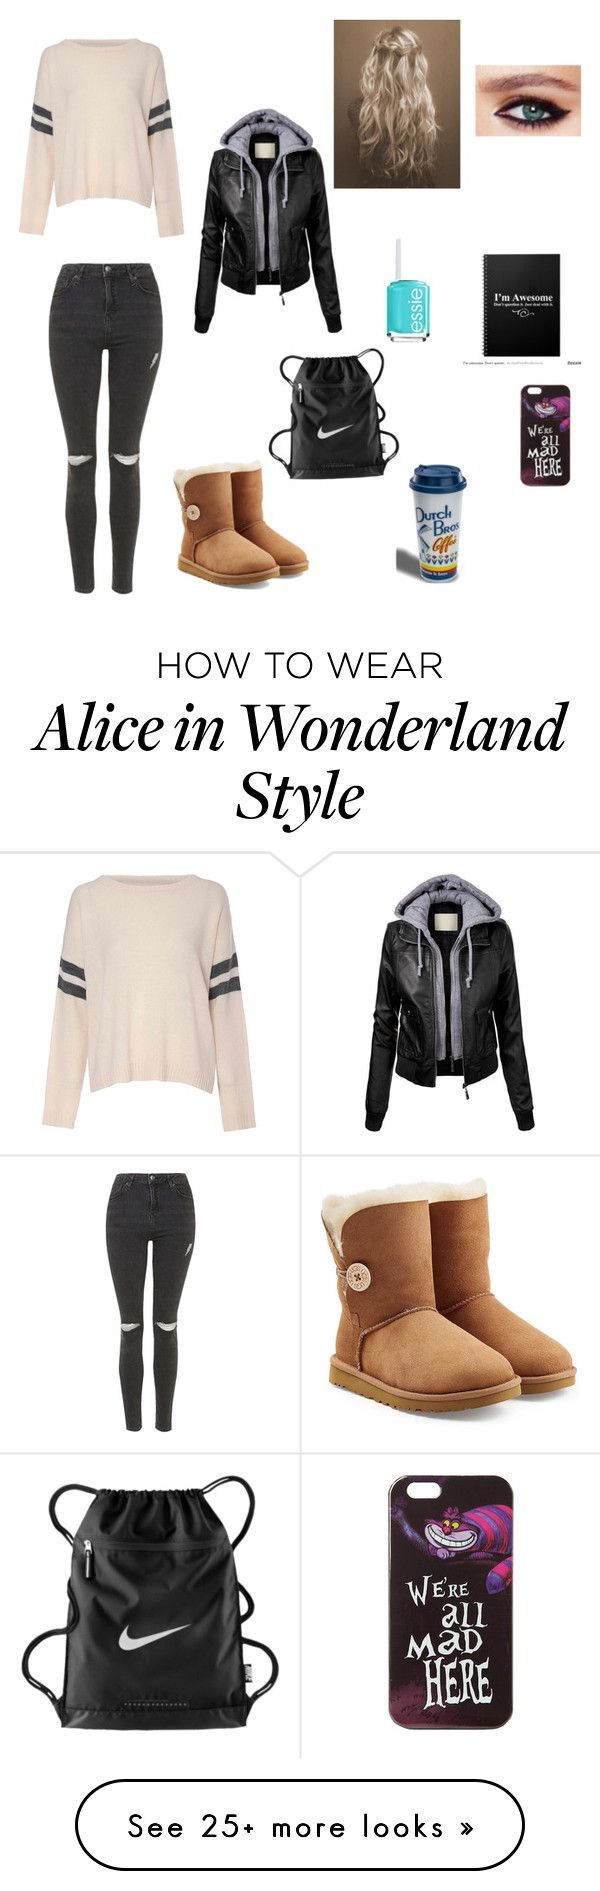 """Going to a debate with my friends"" by lizzie208 on Polyvore featuring Topshop, Glamorous, UGG Australia, NIKE, Disney, Charlotte Tilbury and Essie"